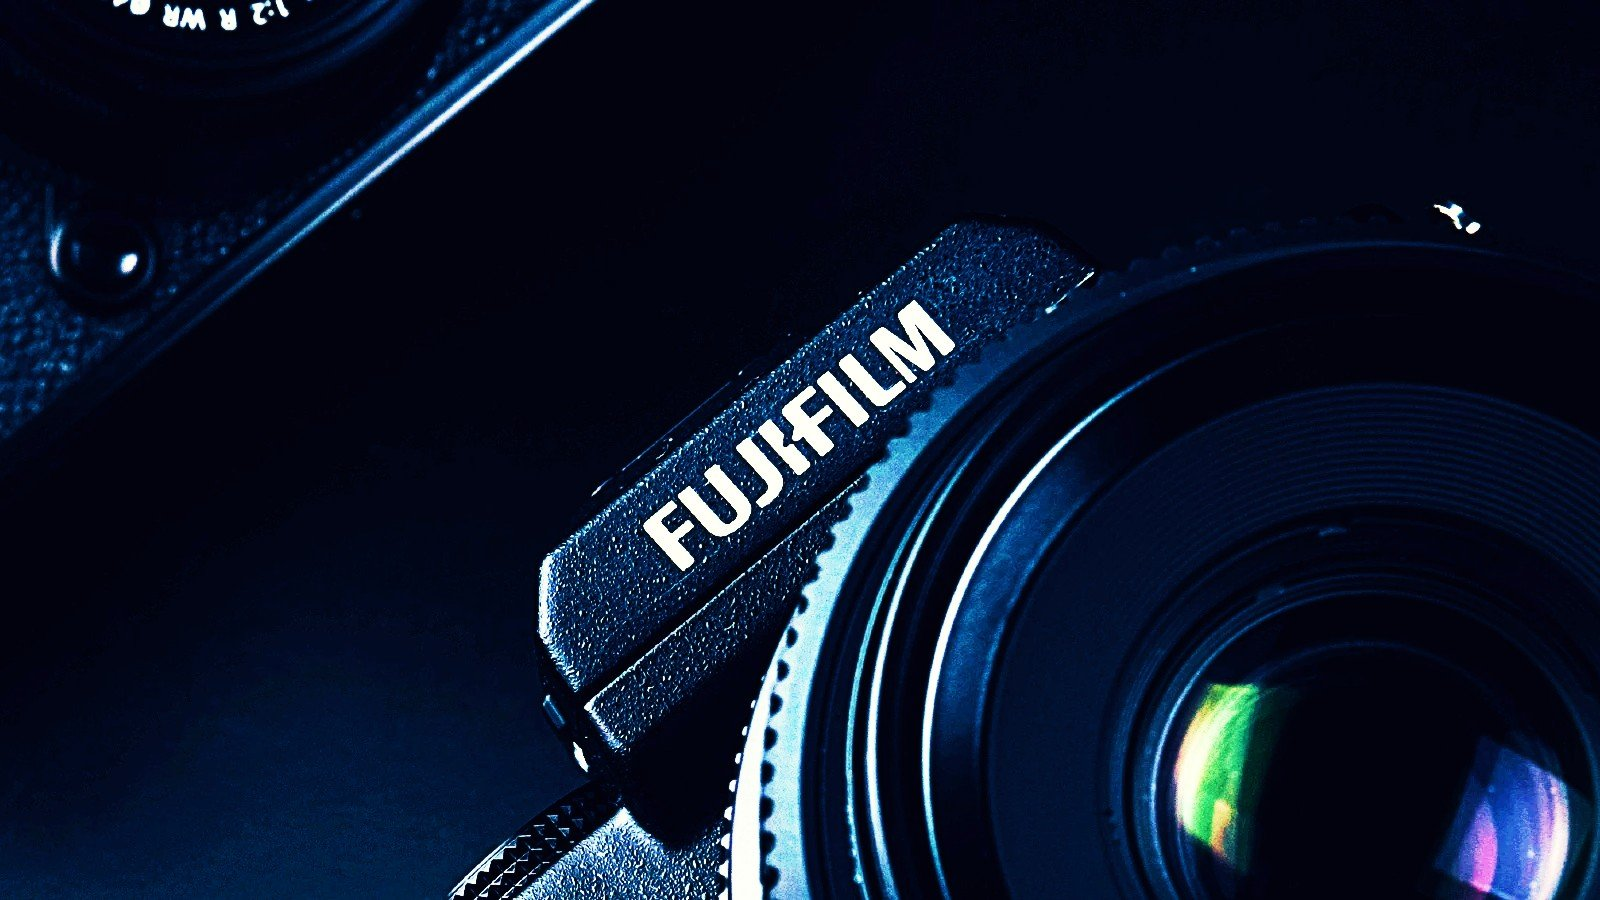 Fujifilm resumes normal operations after ransomware attack